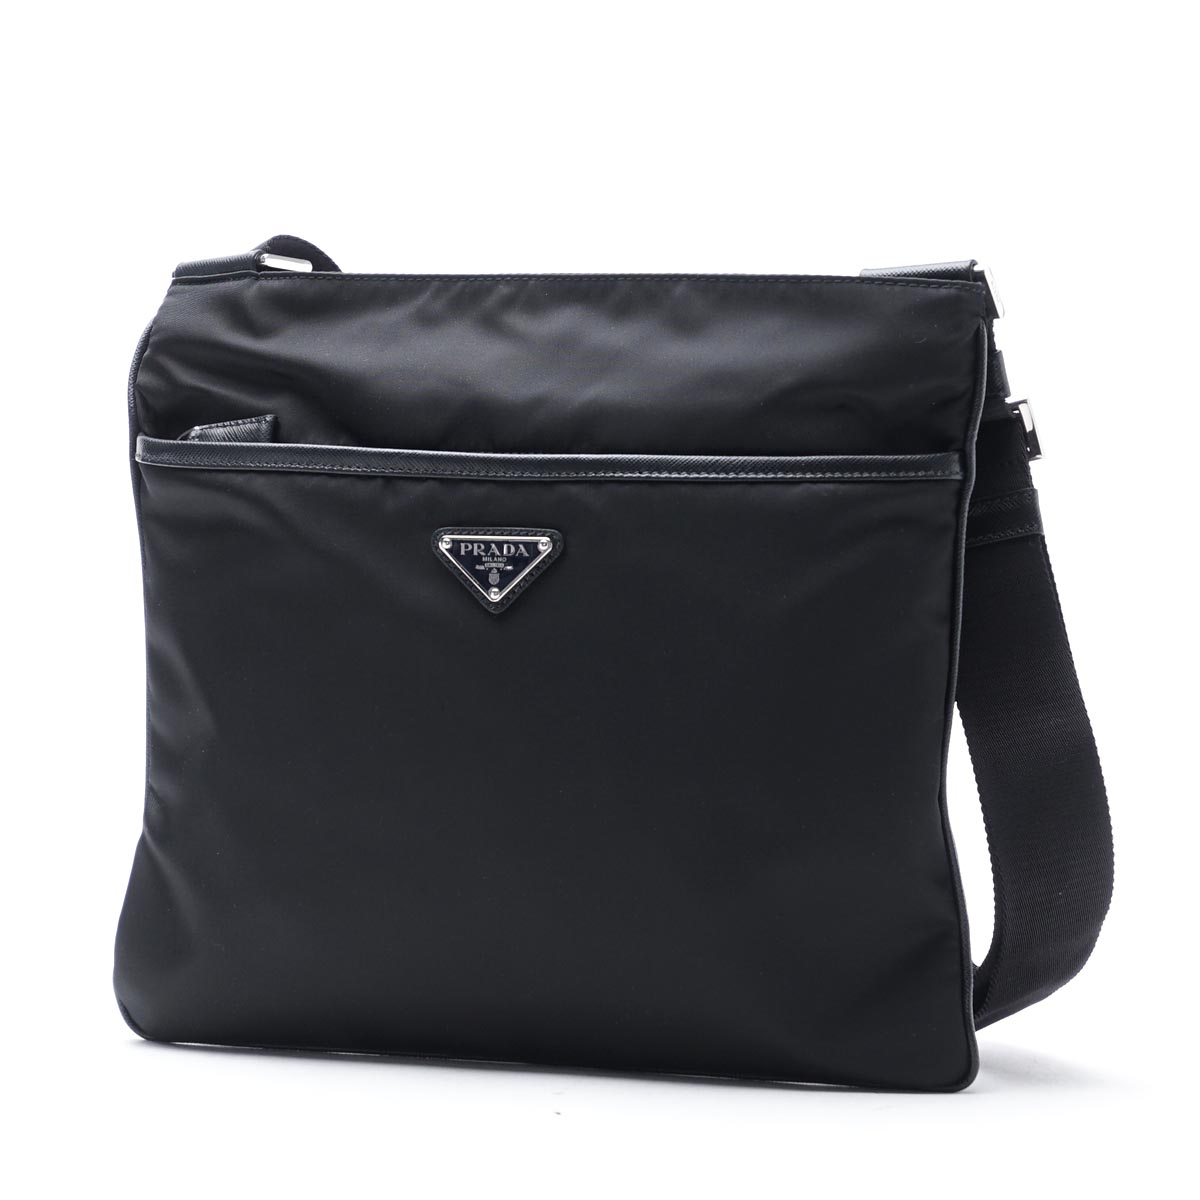 47ffbea08a3d Prada PRADA messenger bag shoulder bag black men black shoulder bag black  2vh053 064 f0002 BANDOLIERA ...